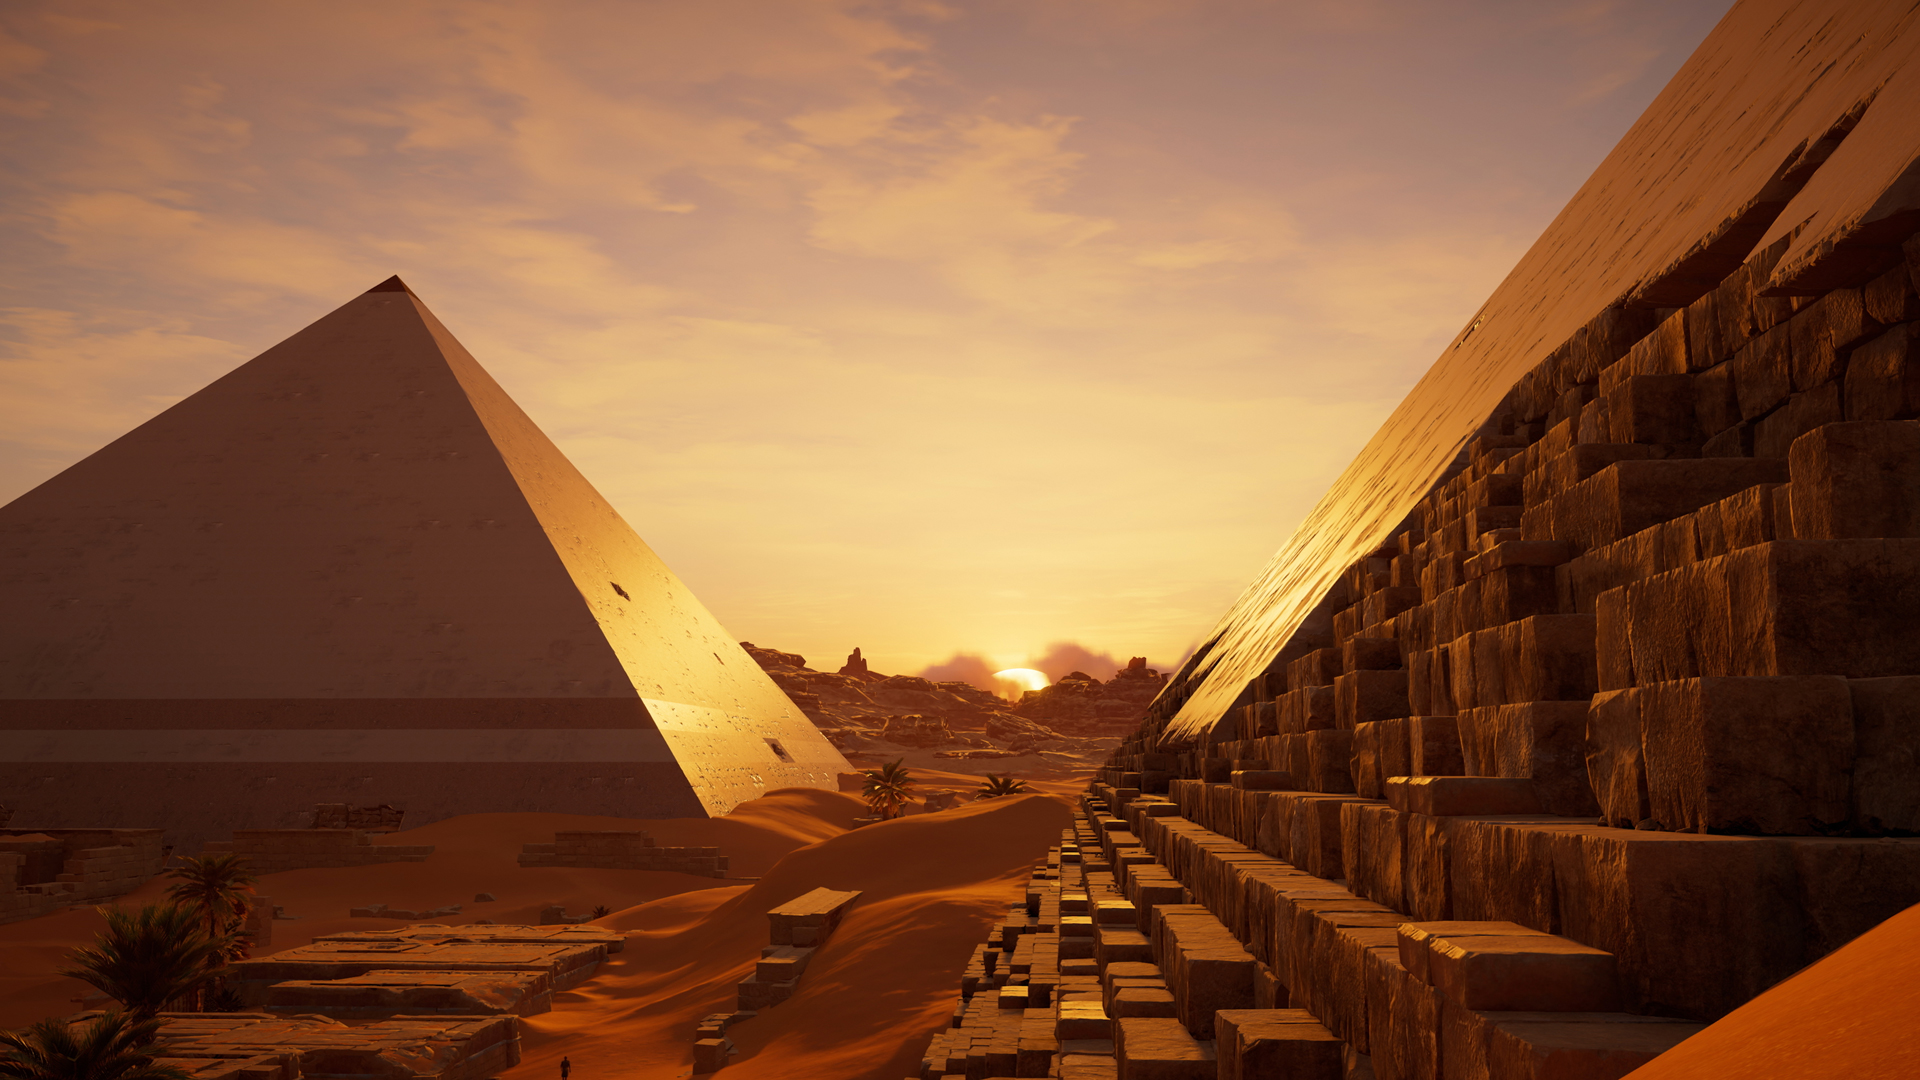 Picture from the game assassins creed. Pyramids of Ghiza